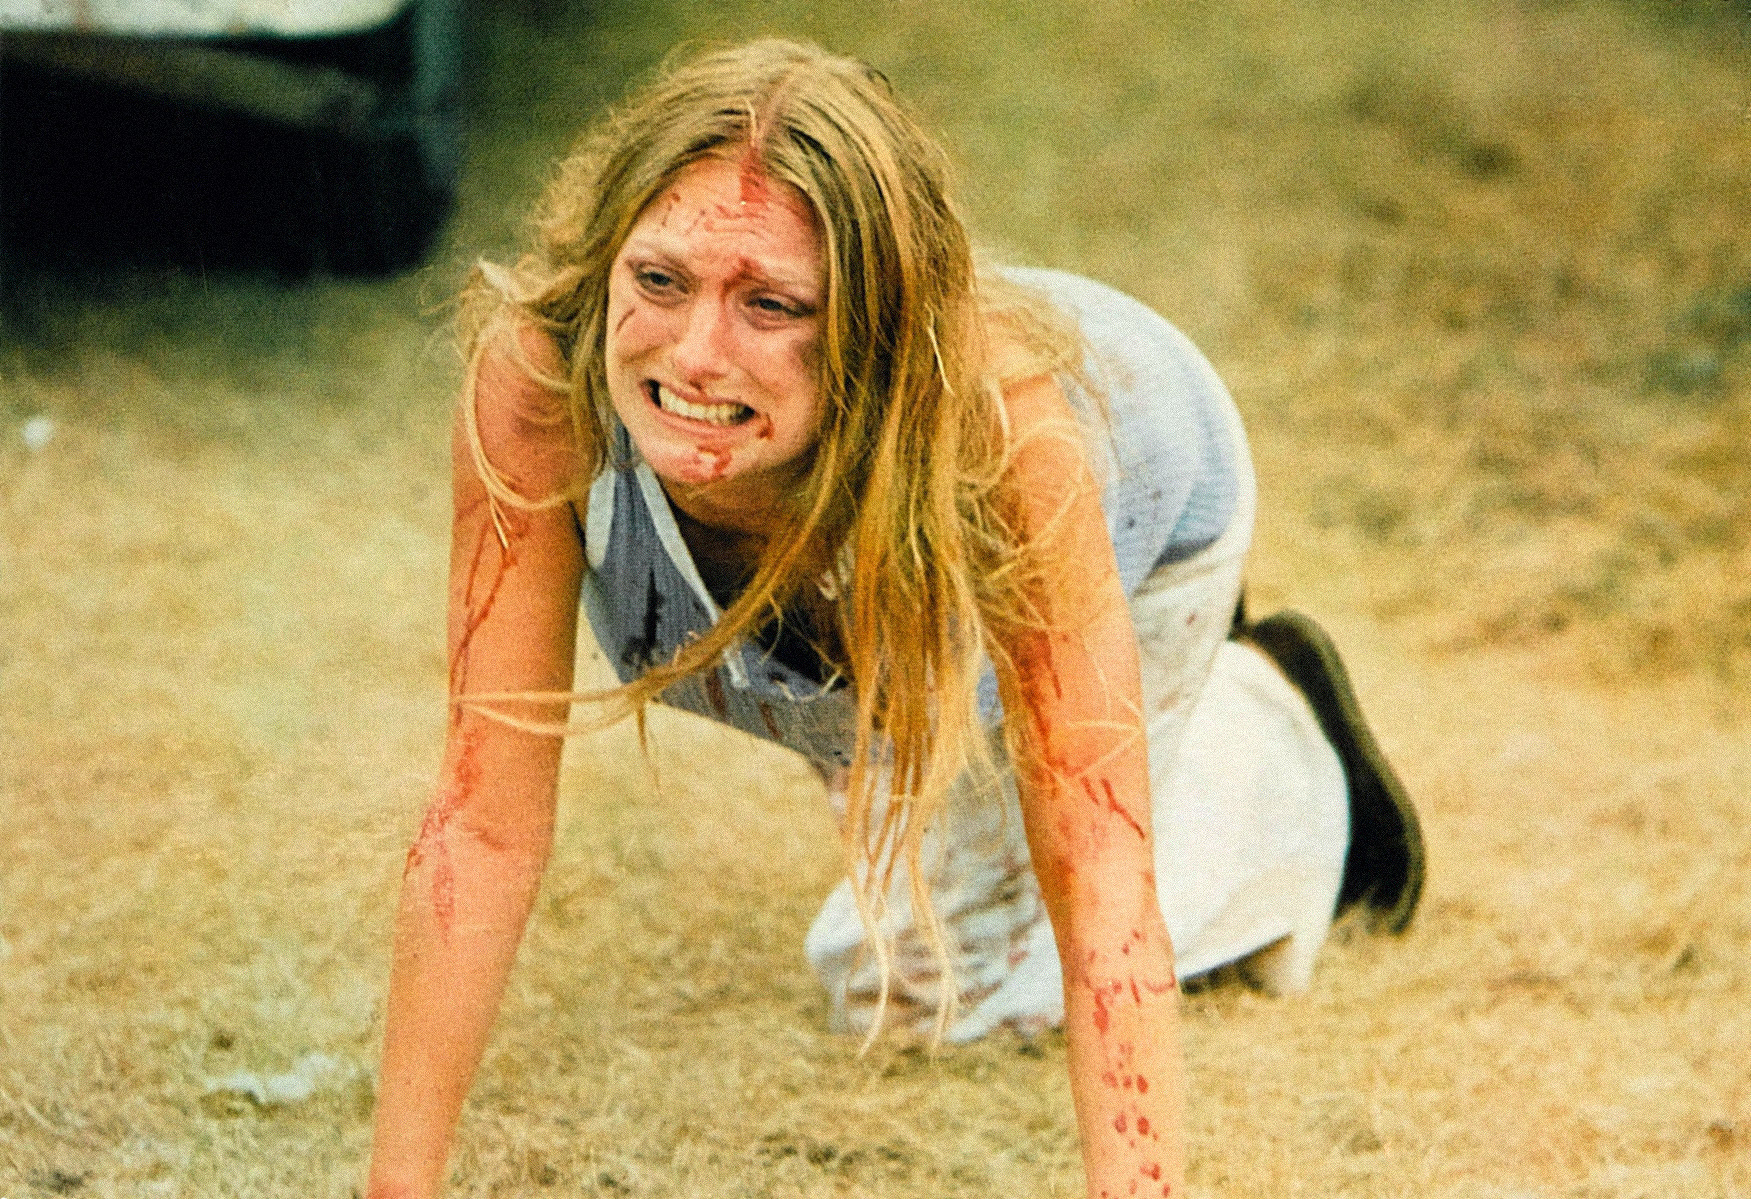 Scarred For Life: What Horror Movie Changed You?